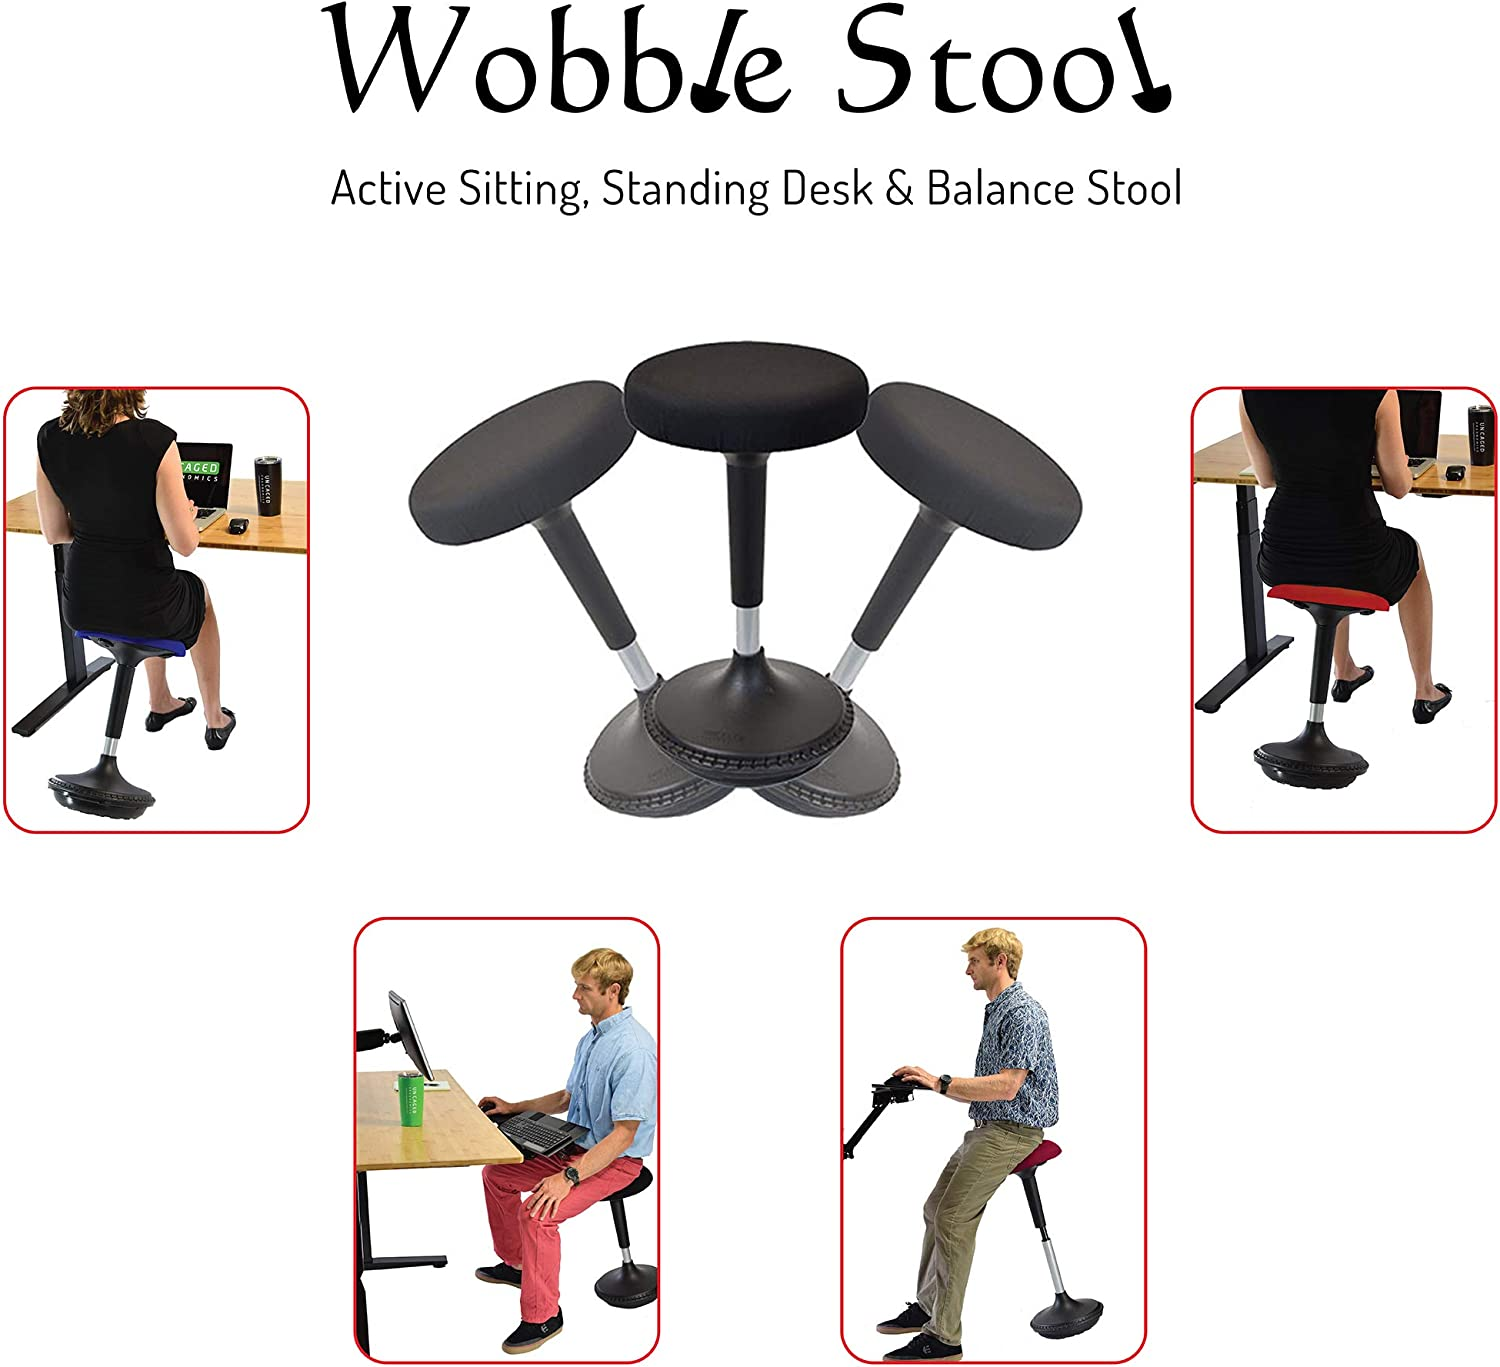 PULUOMIS Balance Perch Stool Saddle Design Wobble Stool Adjustable Height 22-27 Inch for Active Sitting Office Standing Desk Swivel Stool Blue